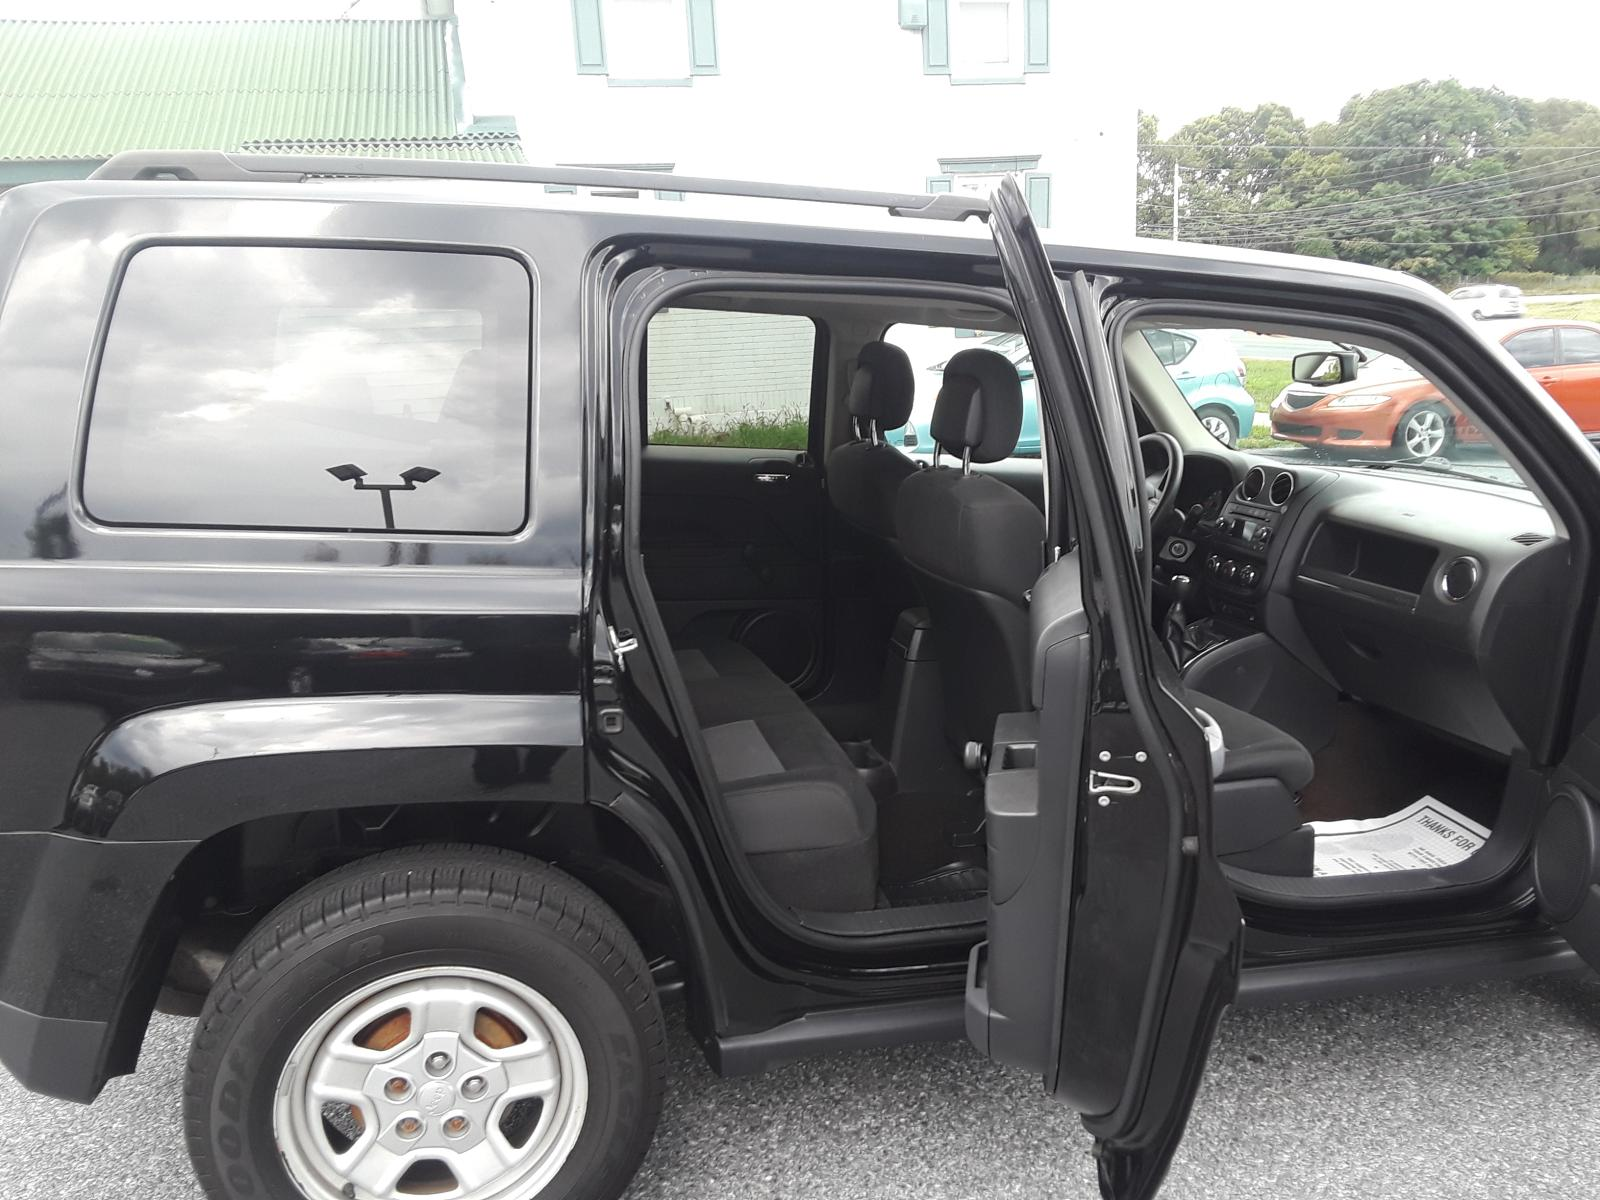 2013 Jeep Patriot Sp 2.0L detail view